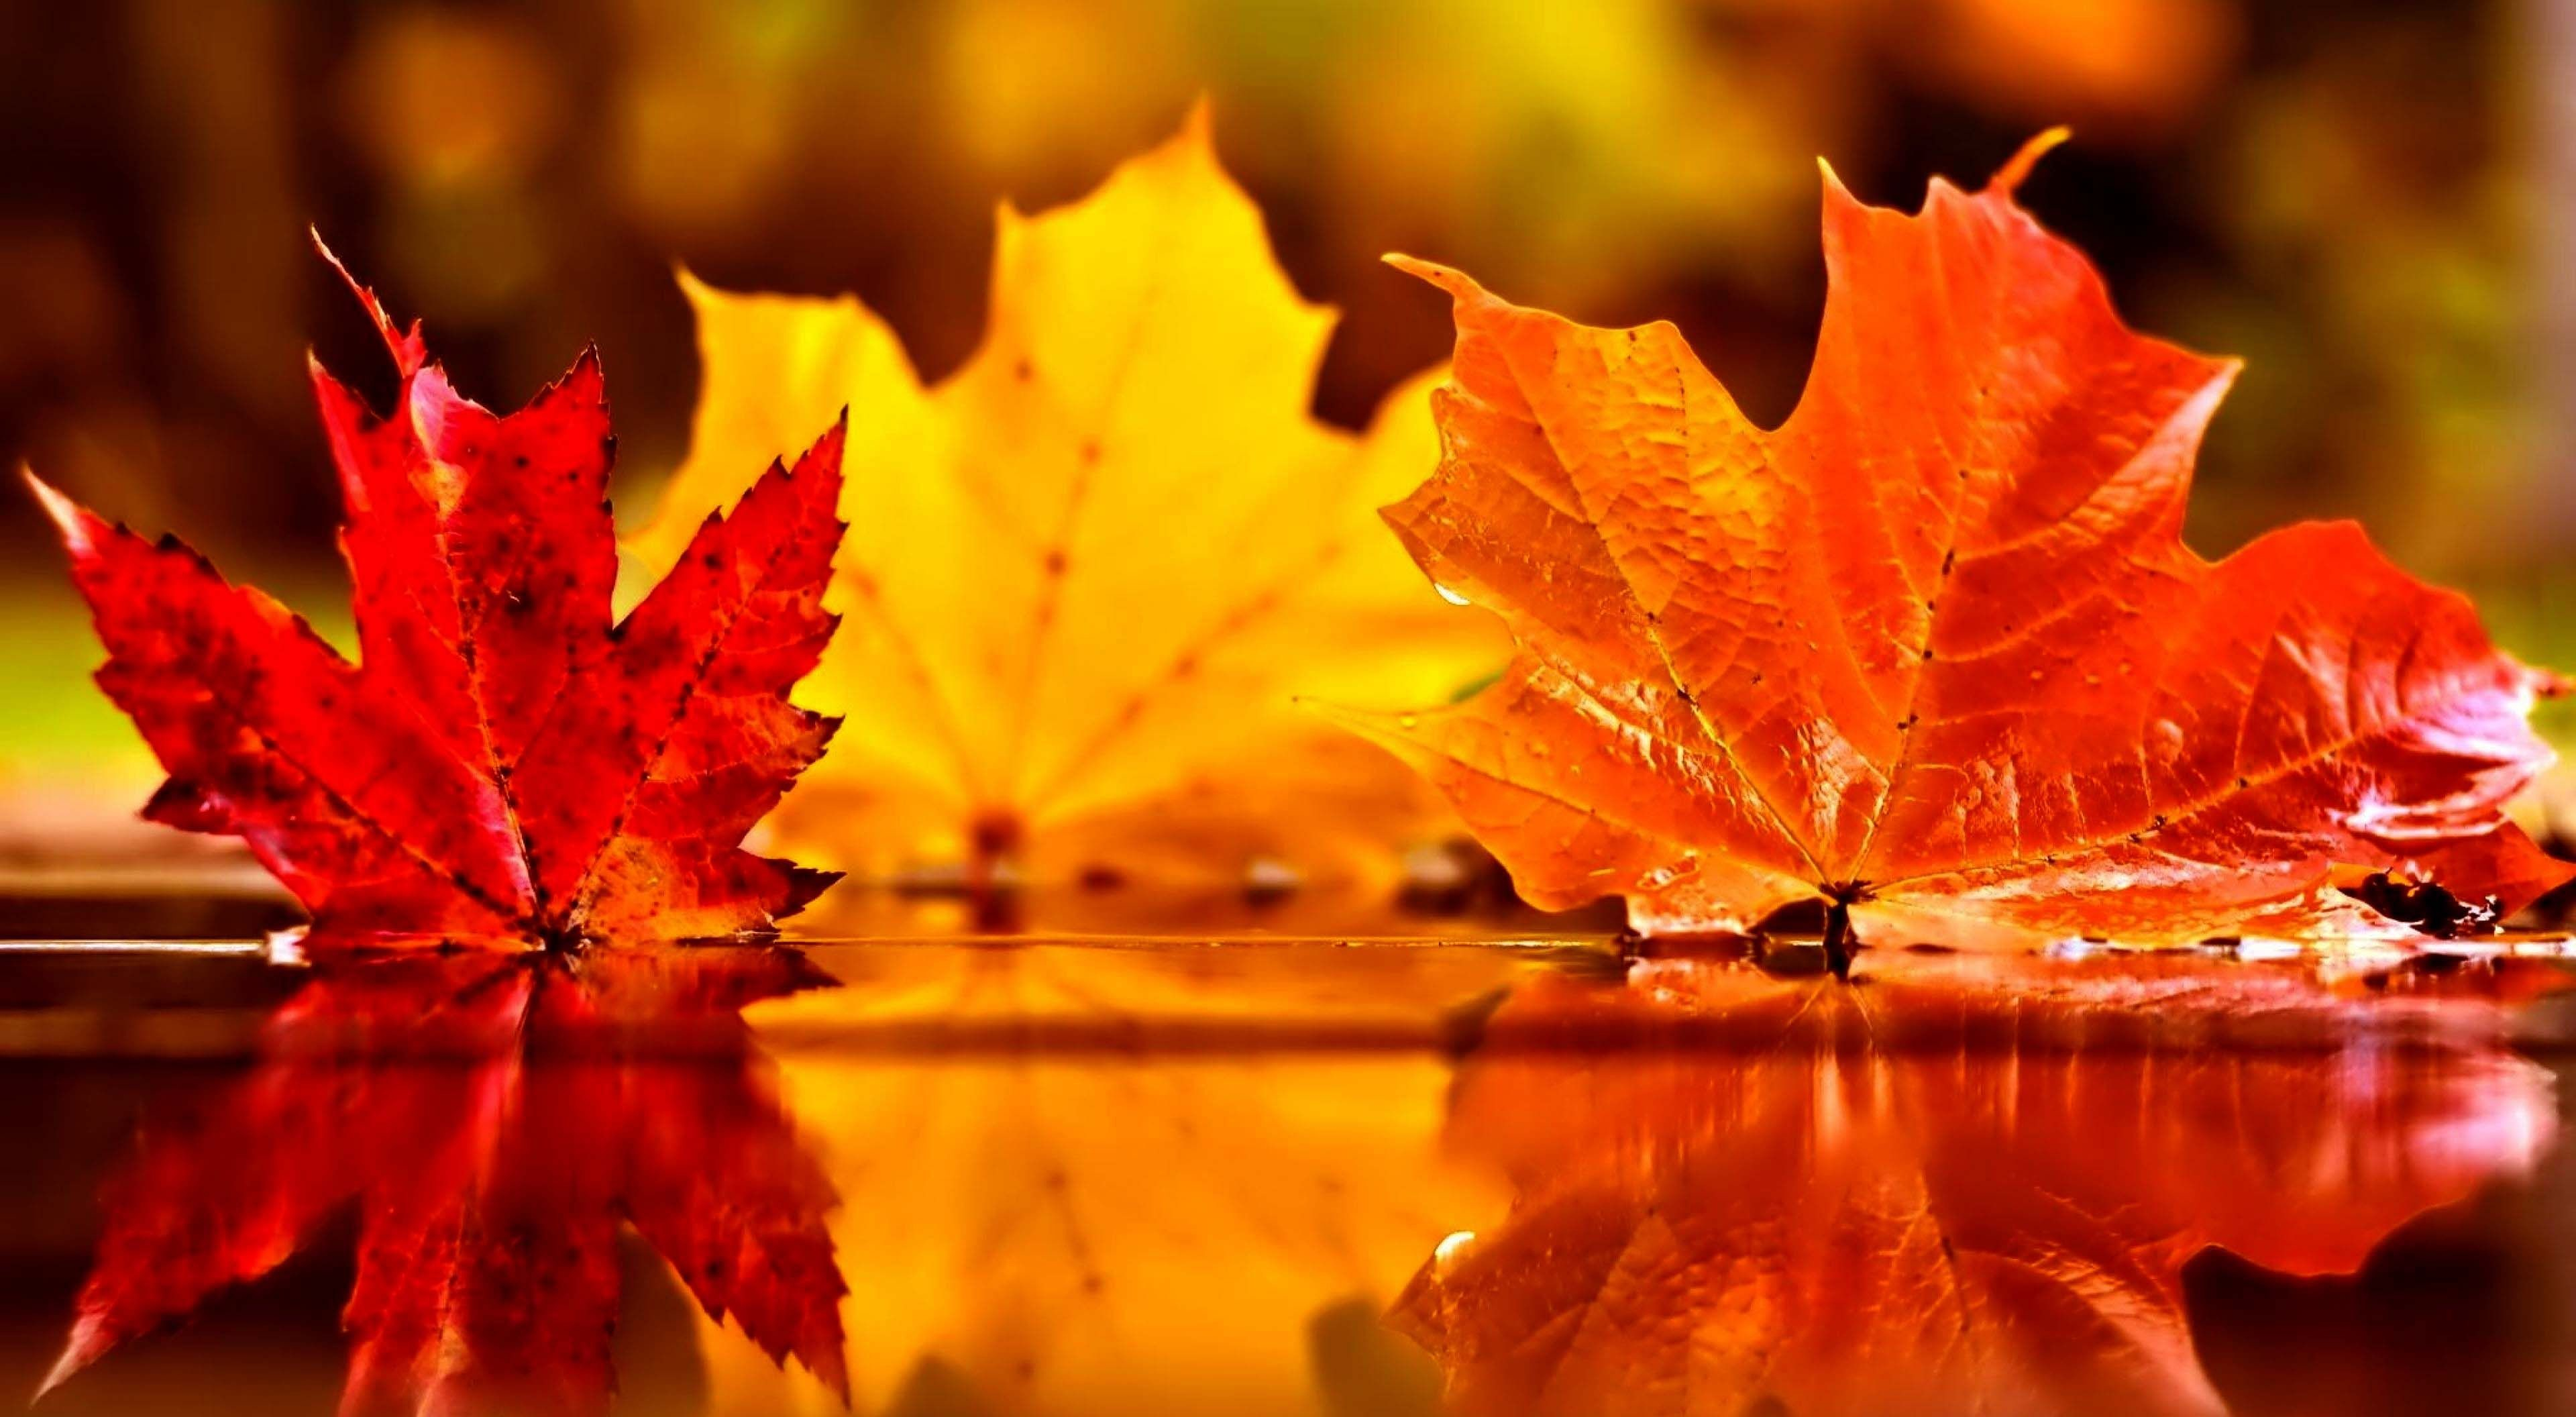 Leaves HD Wallpaper